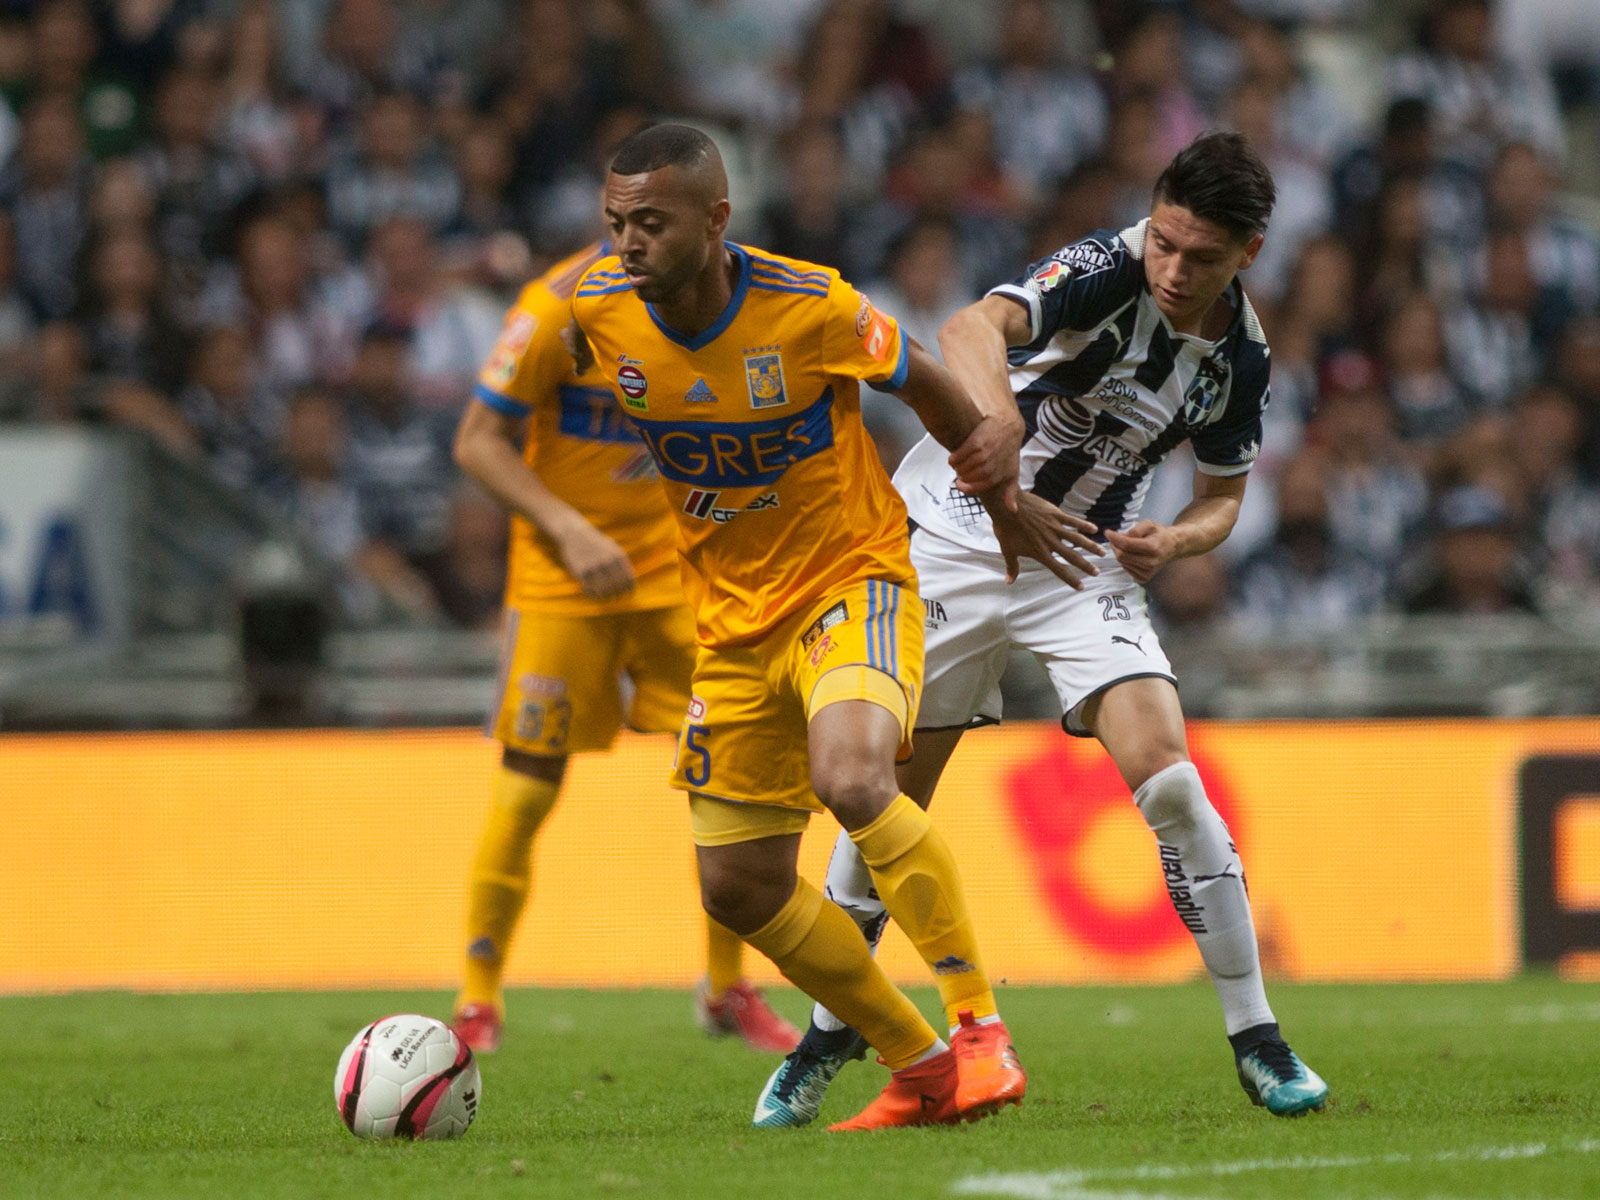 Monterrey's Jonathan Gonzalez is hoping to be crowned a Liga MX champion